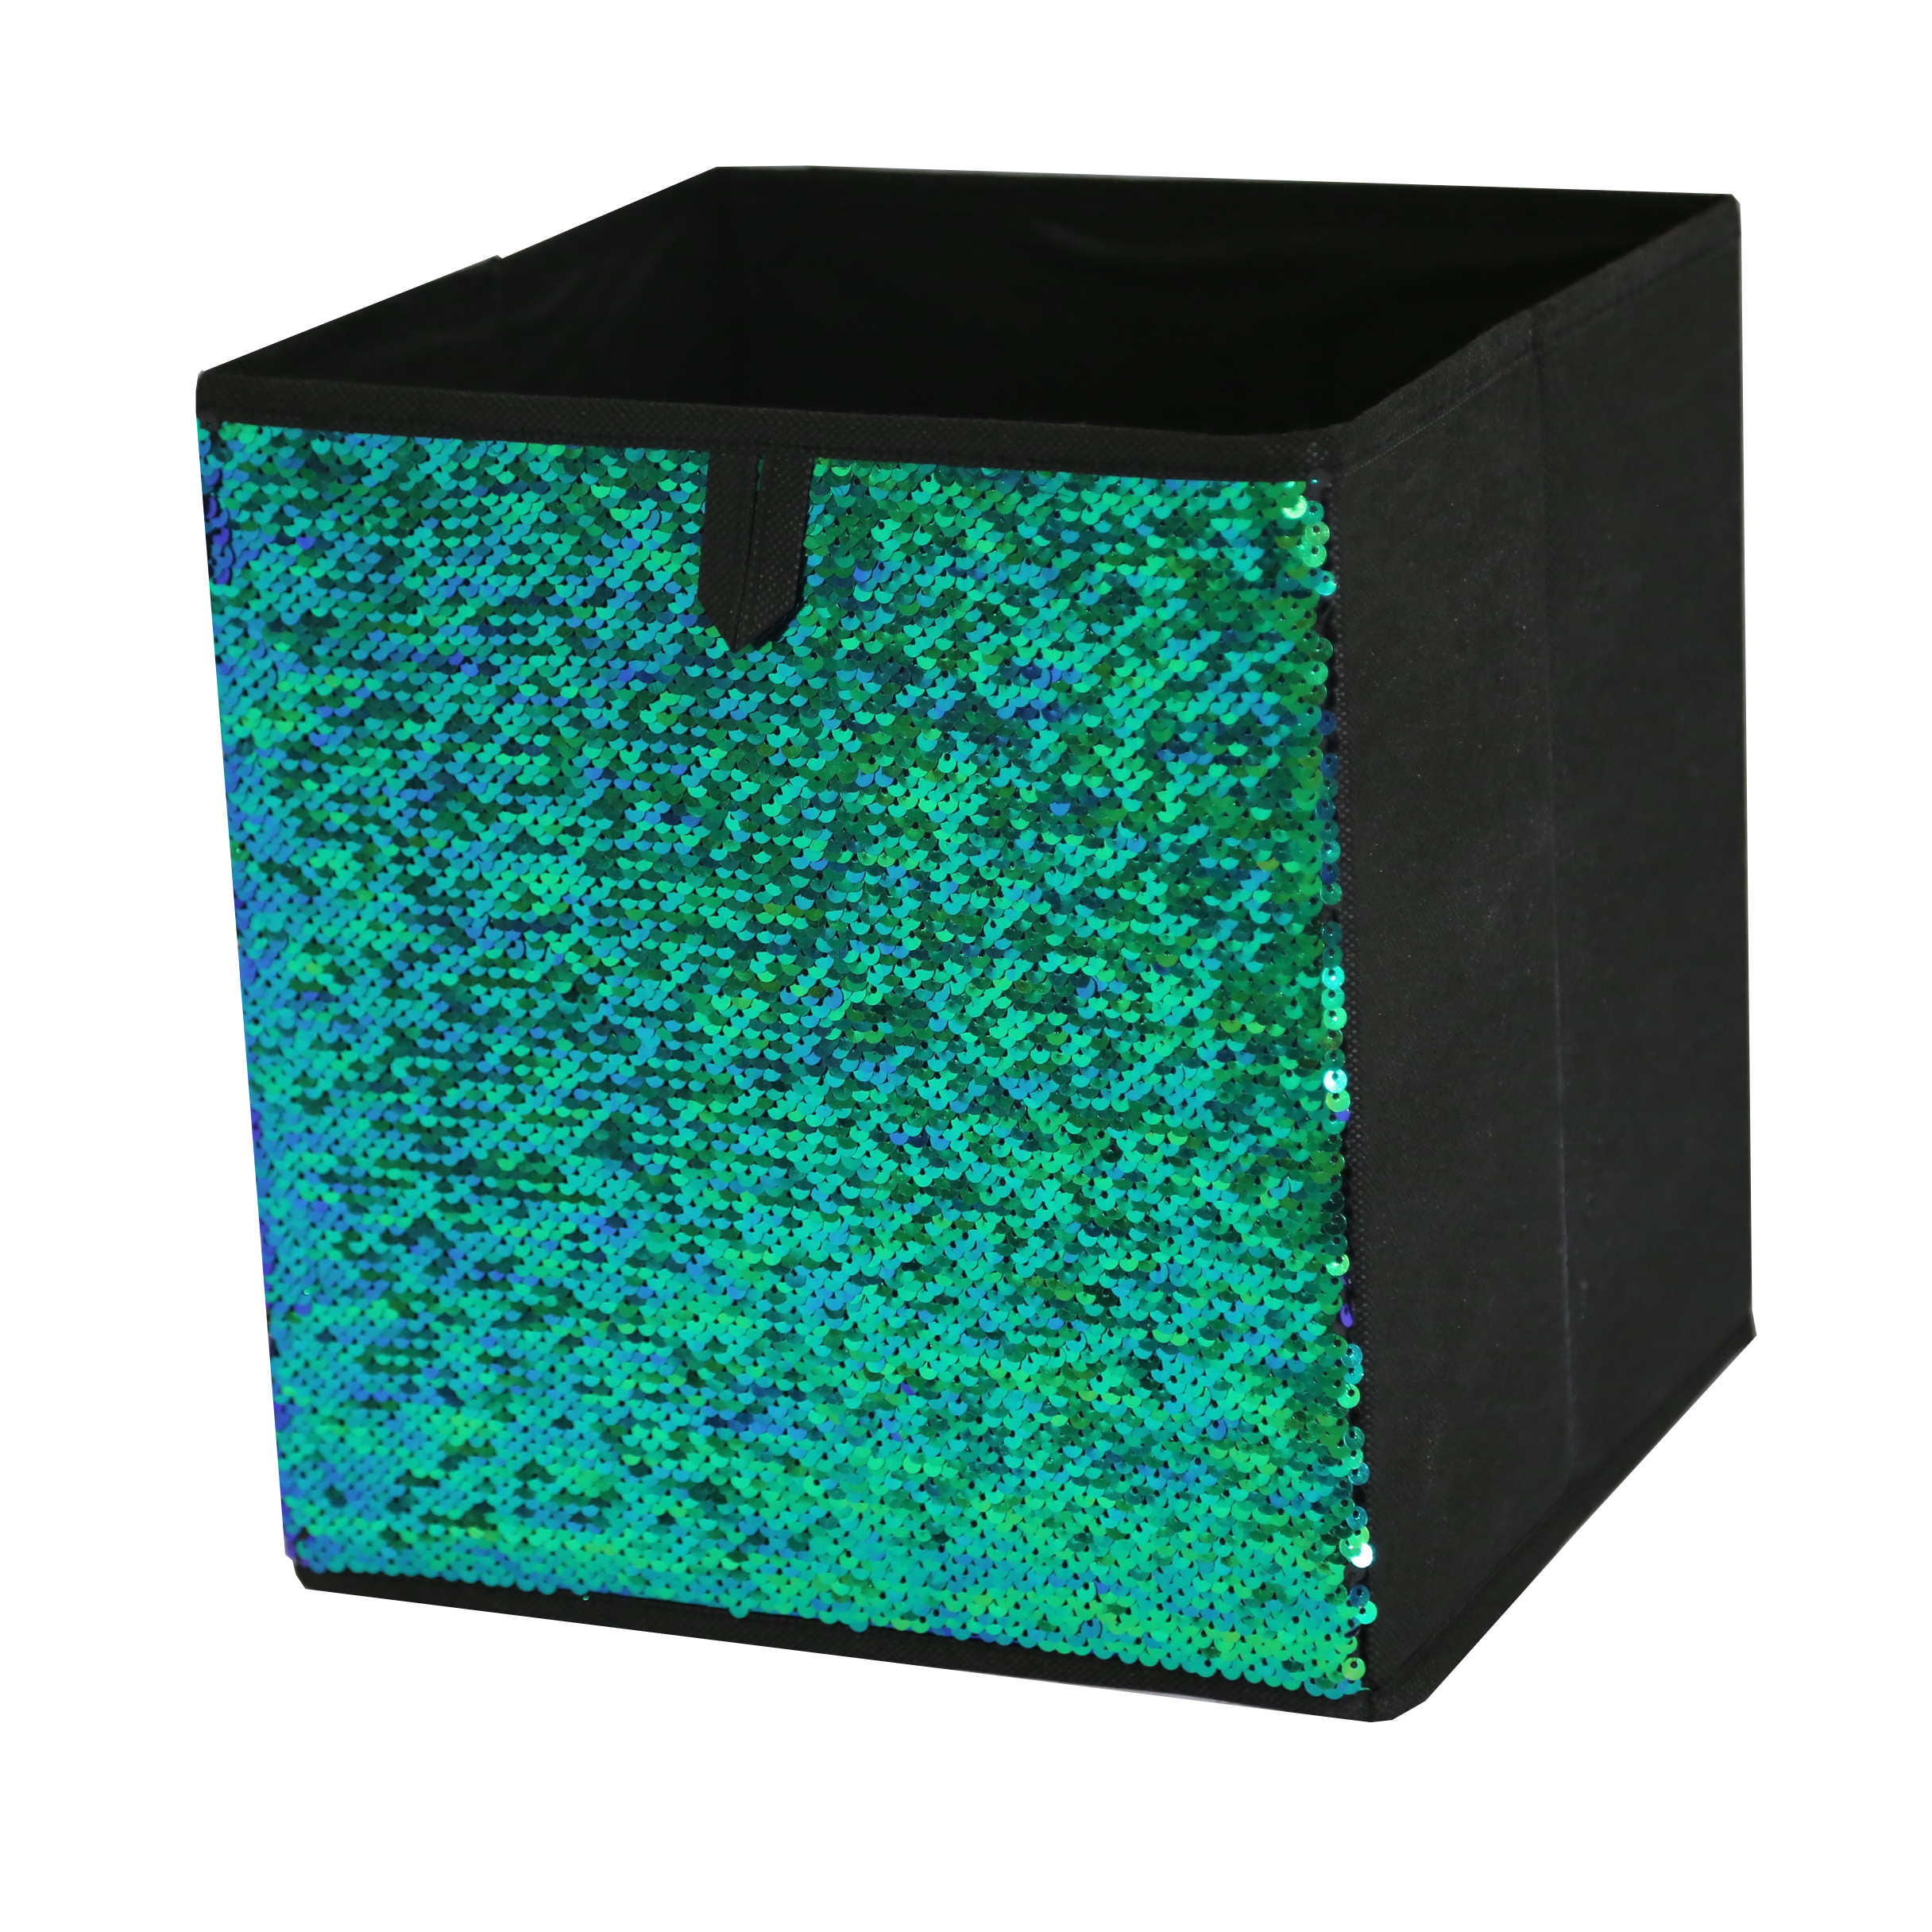 Mainstays Reversible Sequin Collapsible Storage Cube (10.5 x 10.5), 1 piece